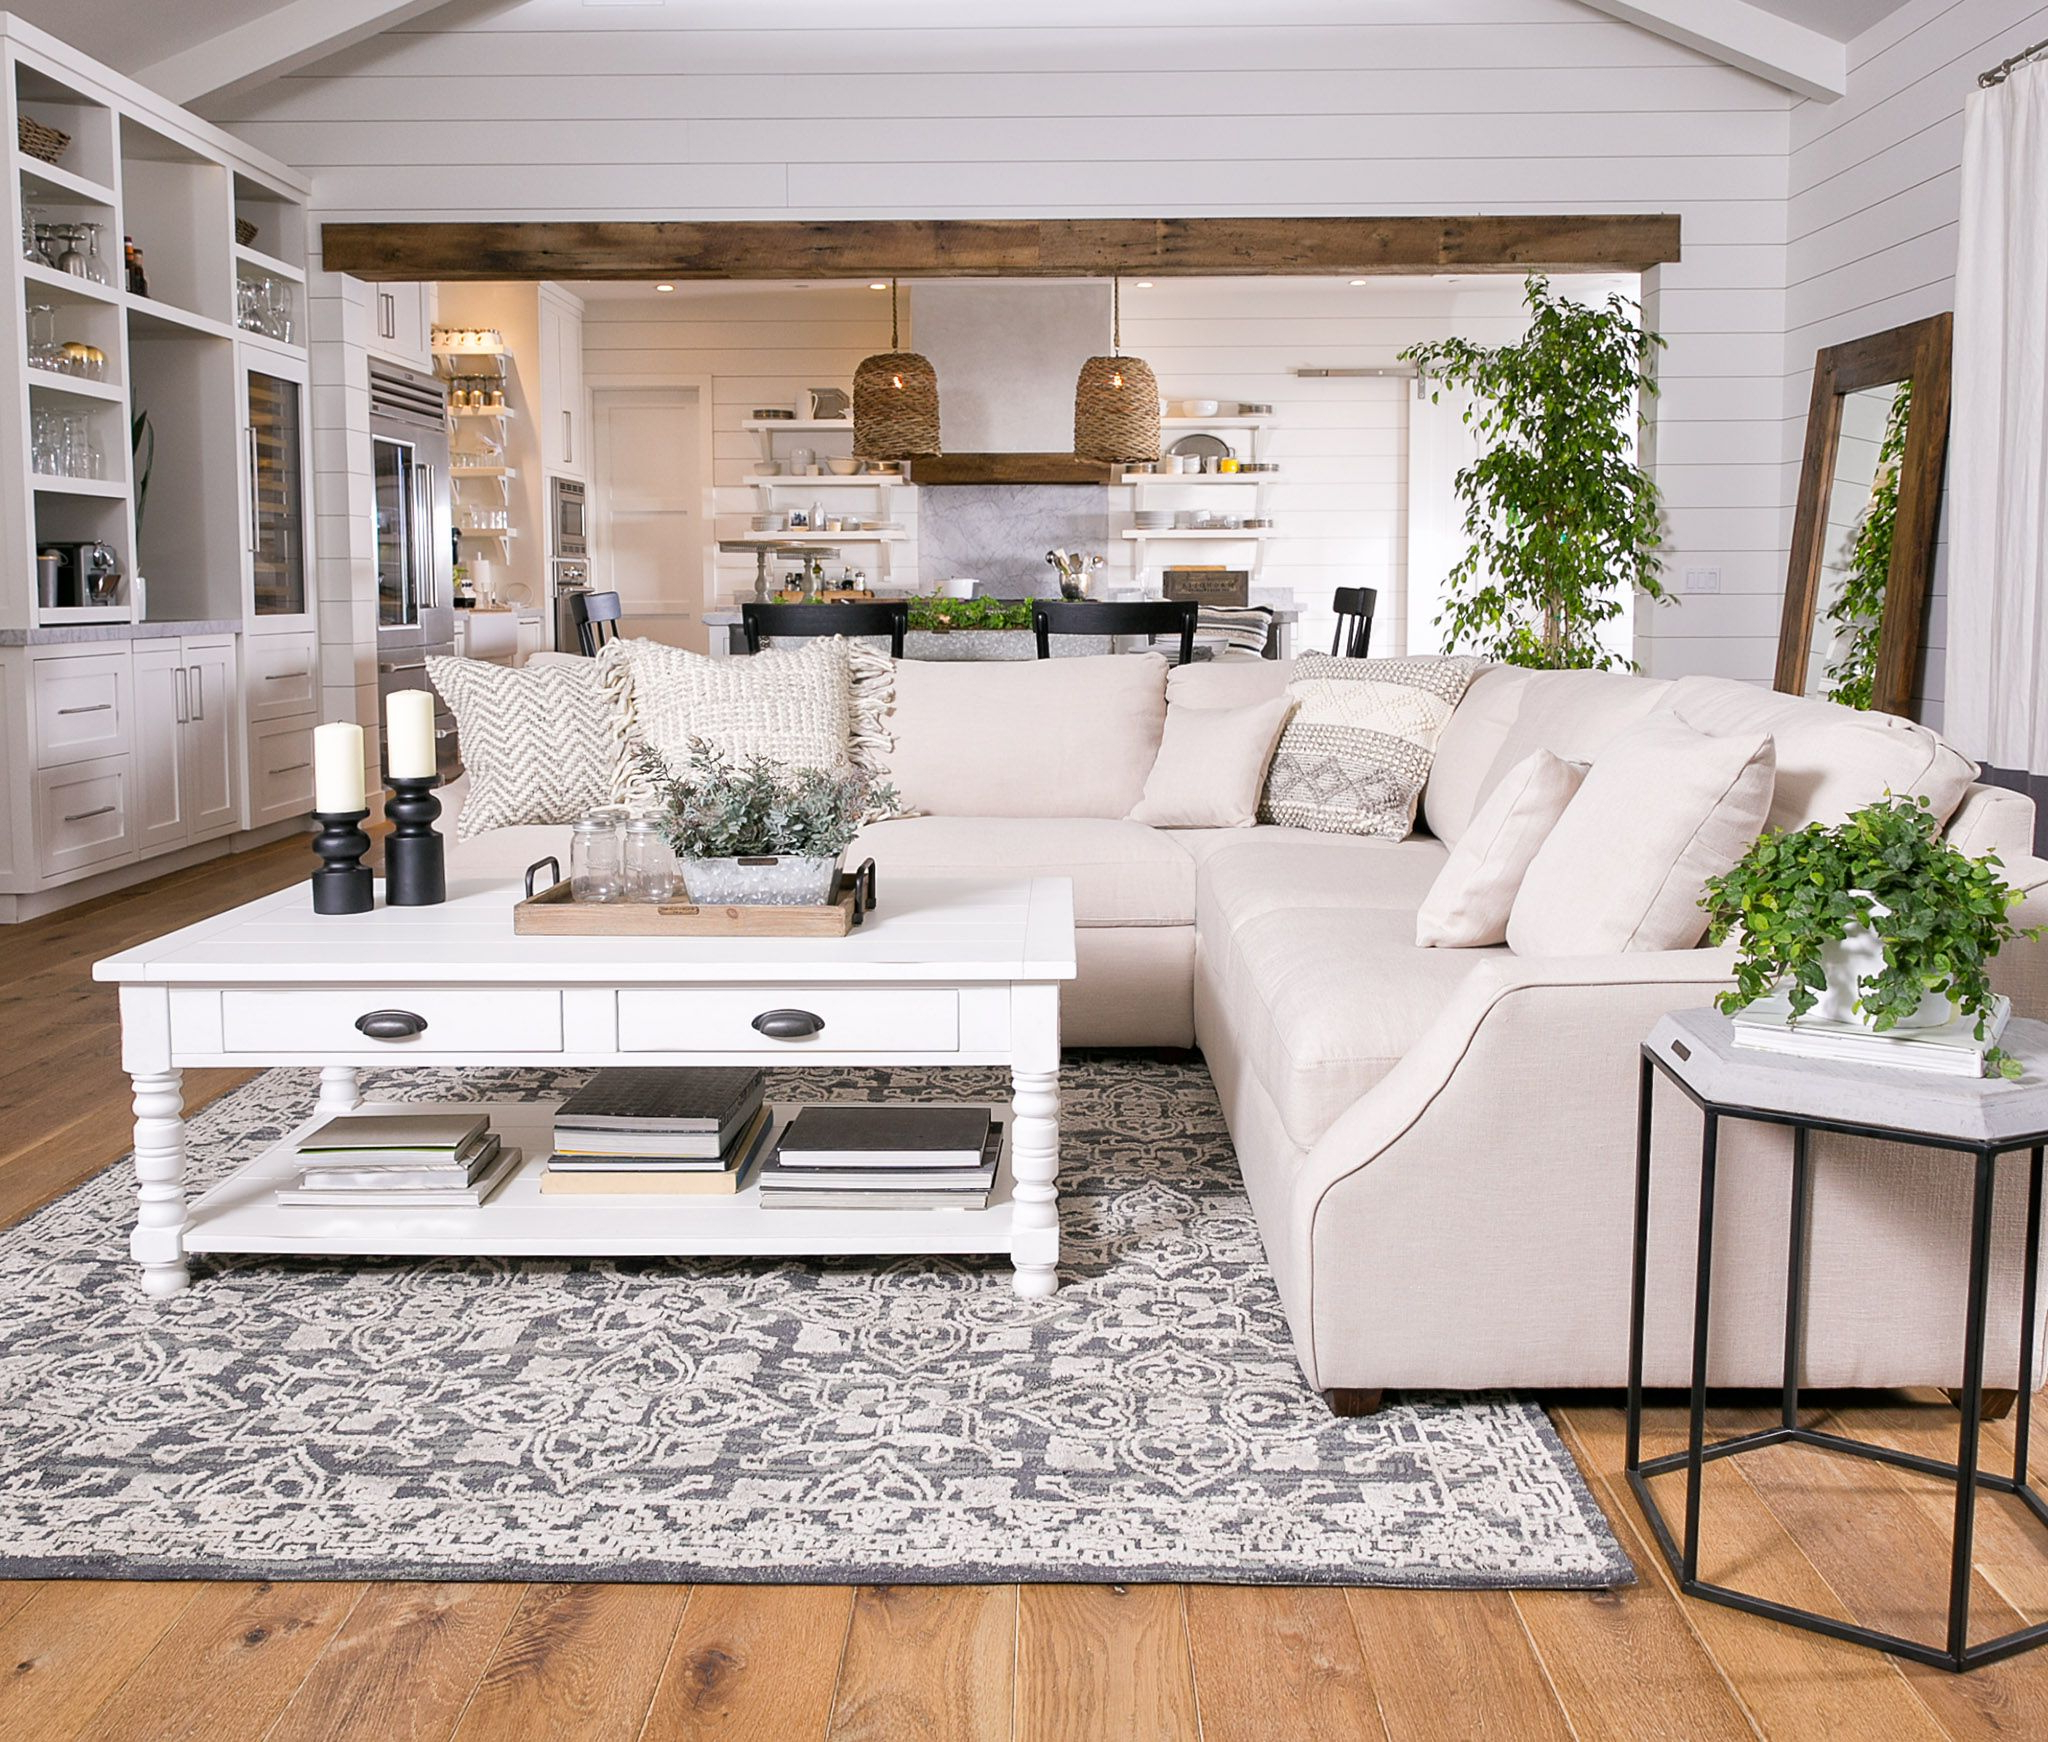 Magnolia Home Homestead 3 Piece Sectionaljoanna Gaines Intended For Most Recently Released Magnolia Home Homestead 3 Piece Sectionals By Joanna Gaines (View 6 of 20)